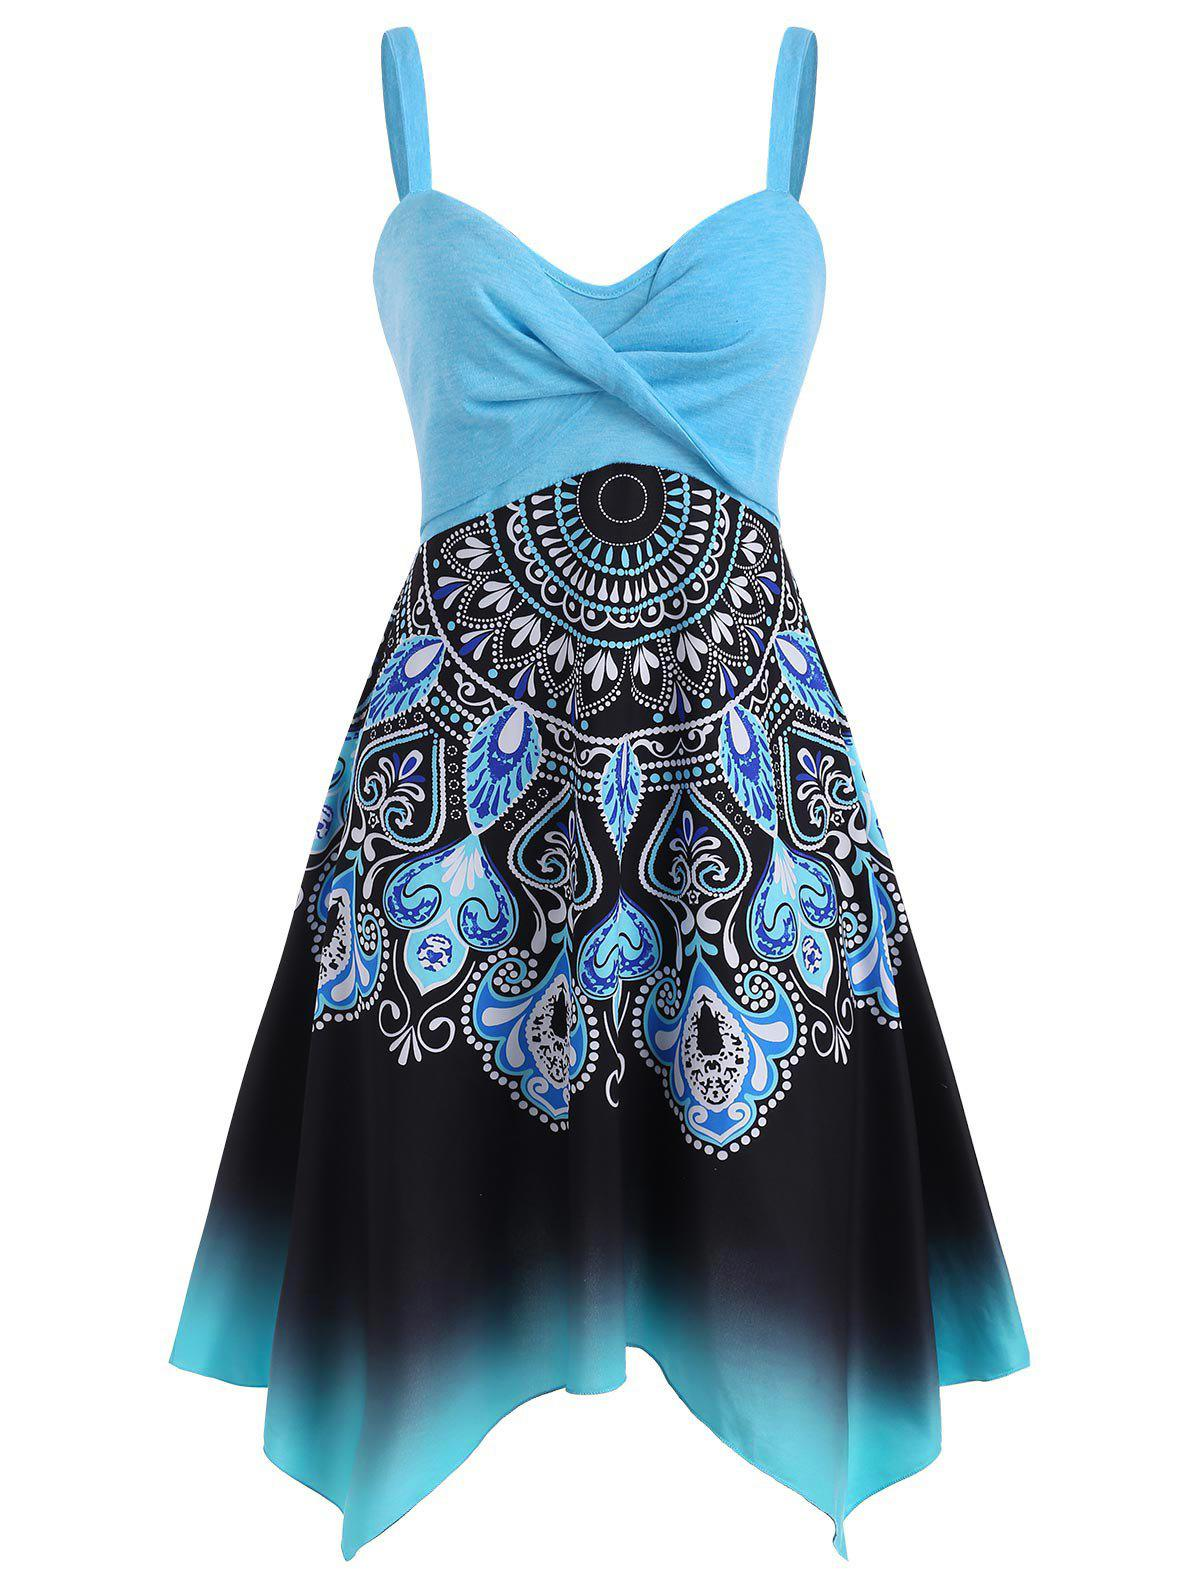 Floral Baroque Print Twisted Handkerchief Dress - LIGHT BLUE L